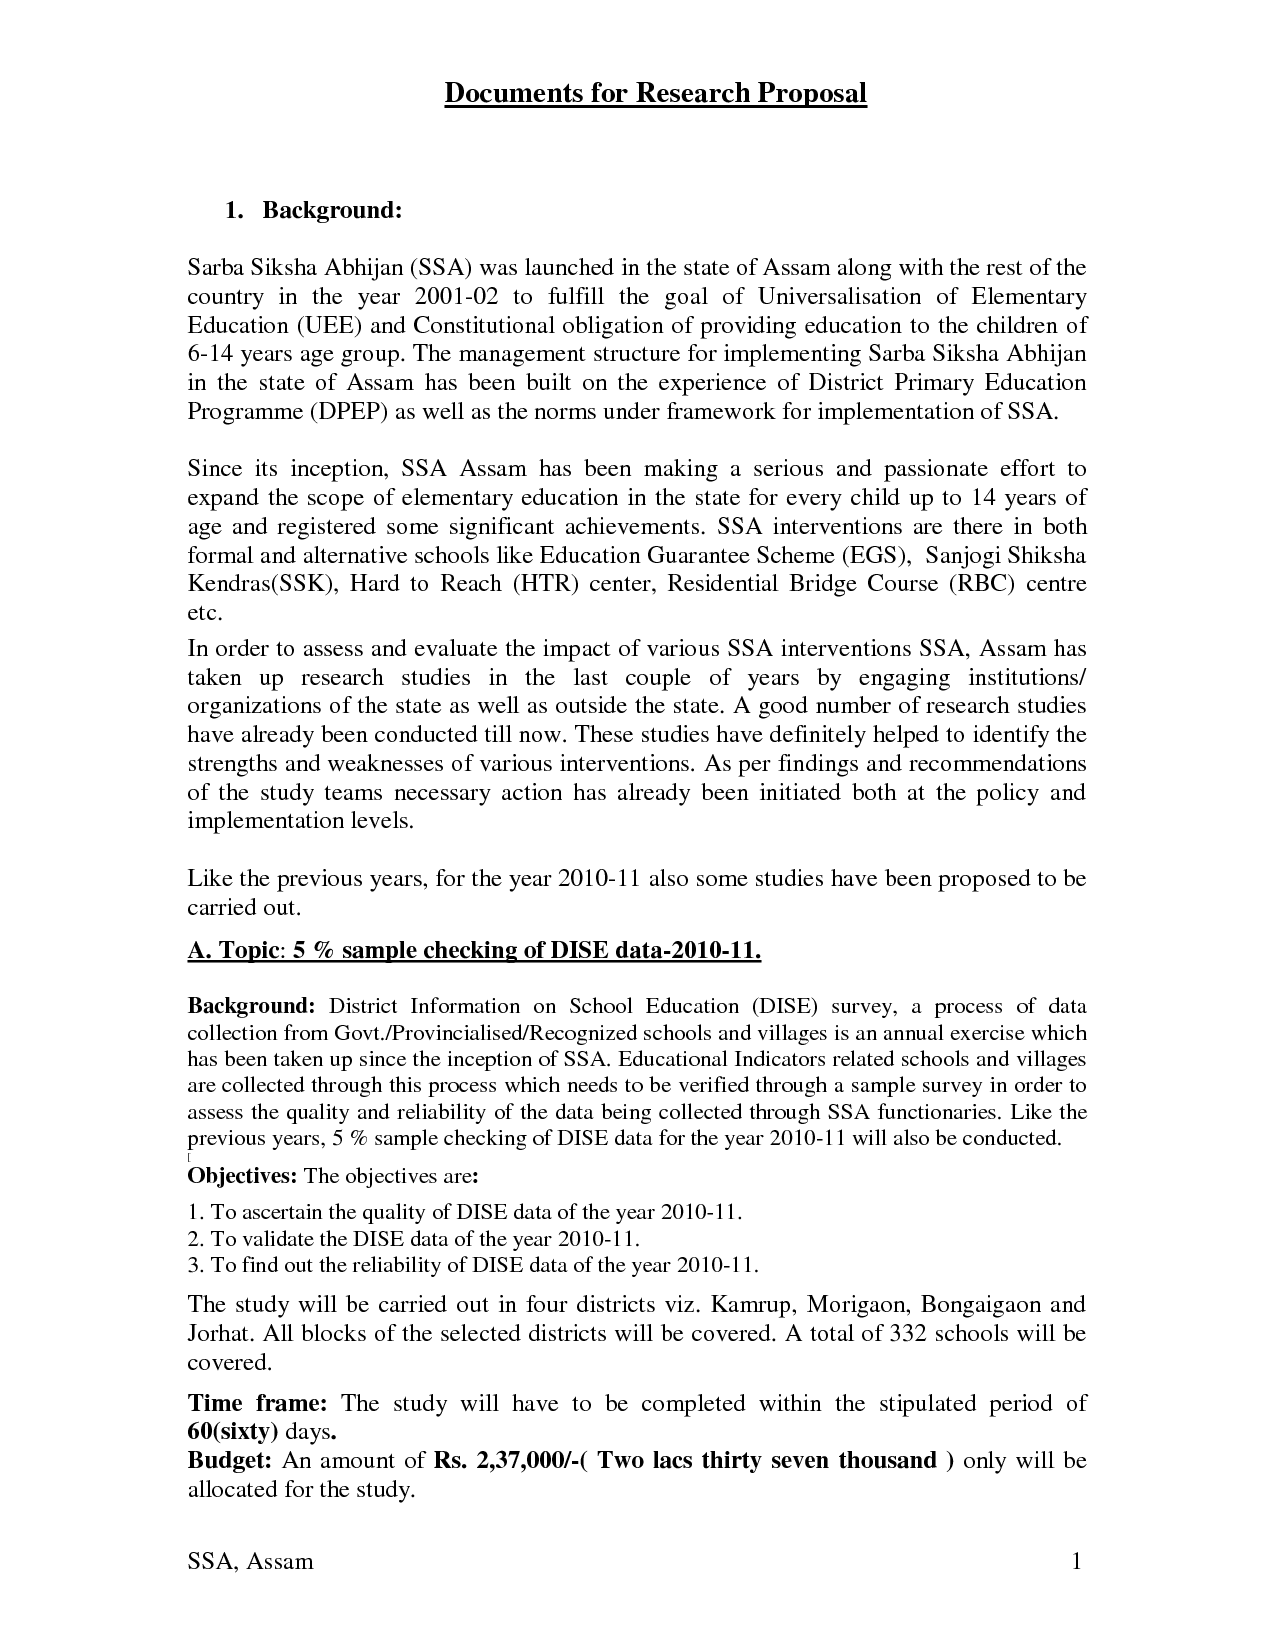 006 Research Topic Proposal Sample 501313 Example Wonderful Paper Template Write 5 Of A Full